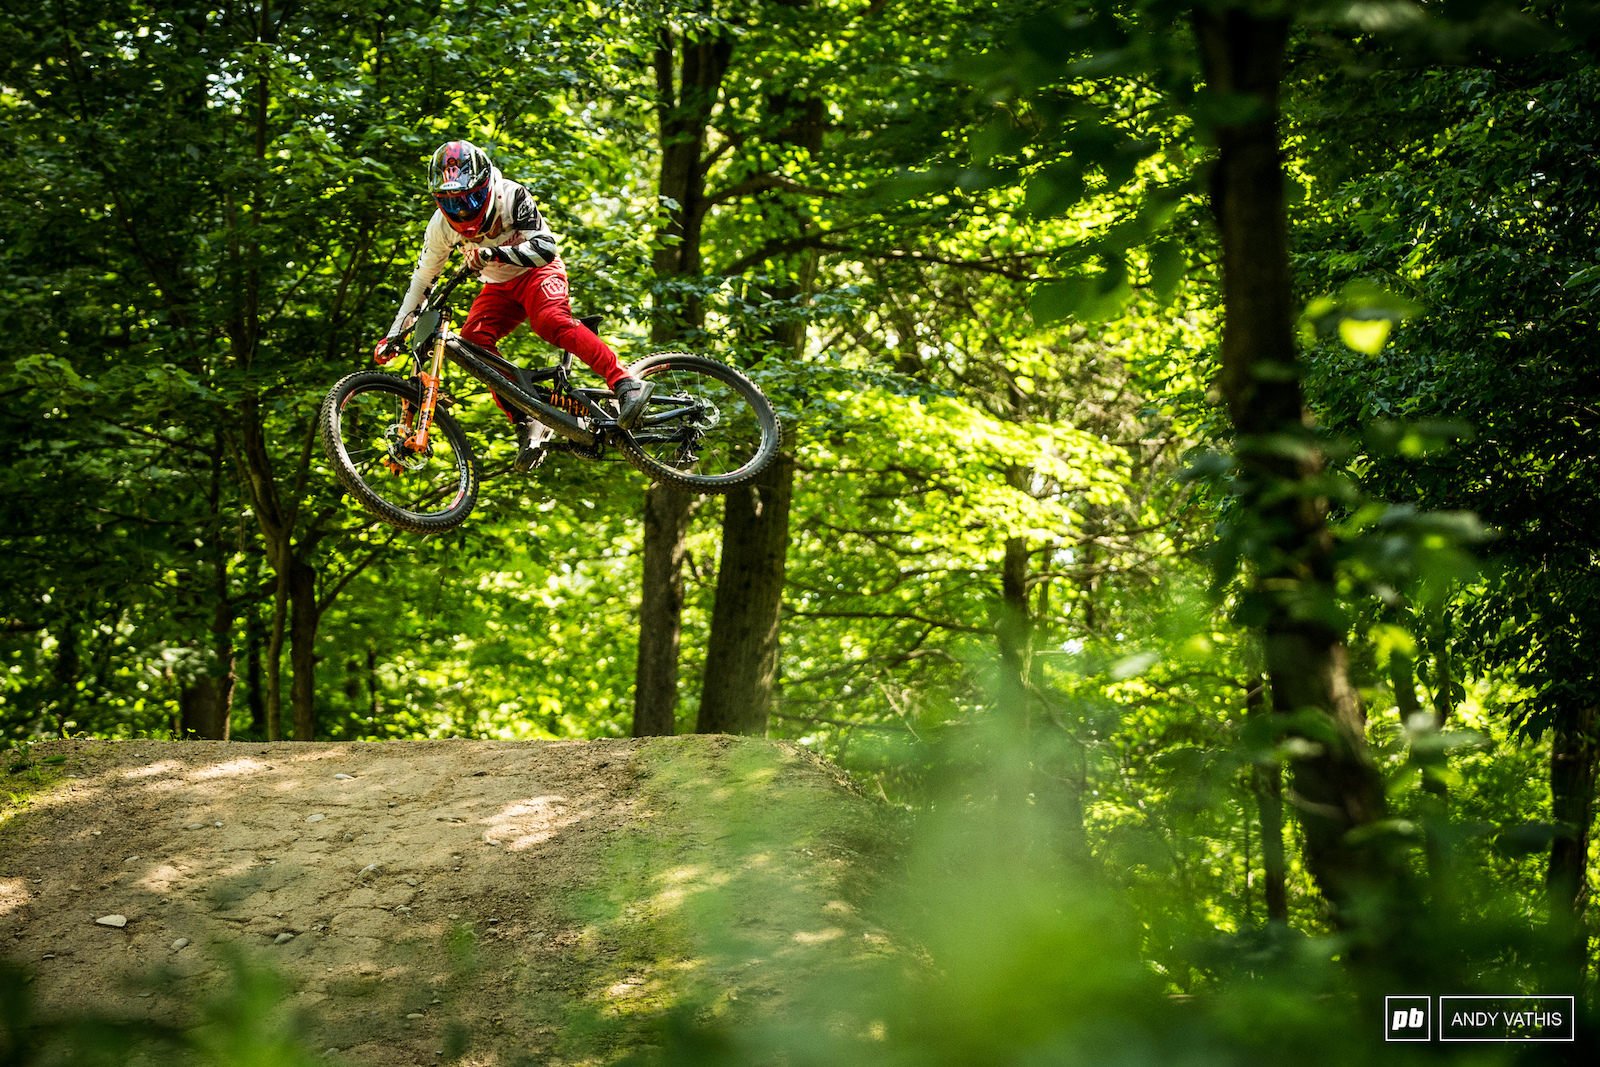 It s easy and quite common to hike laps of the three big and perfectly sculpted tables in Lower Dominion. This section runs parallel to the fire road. Michael up and over with his race style.